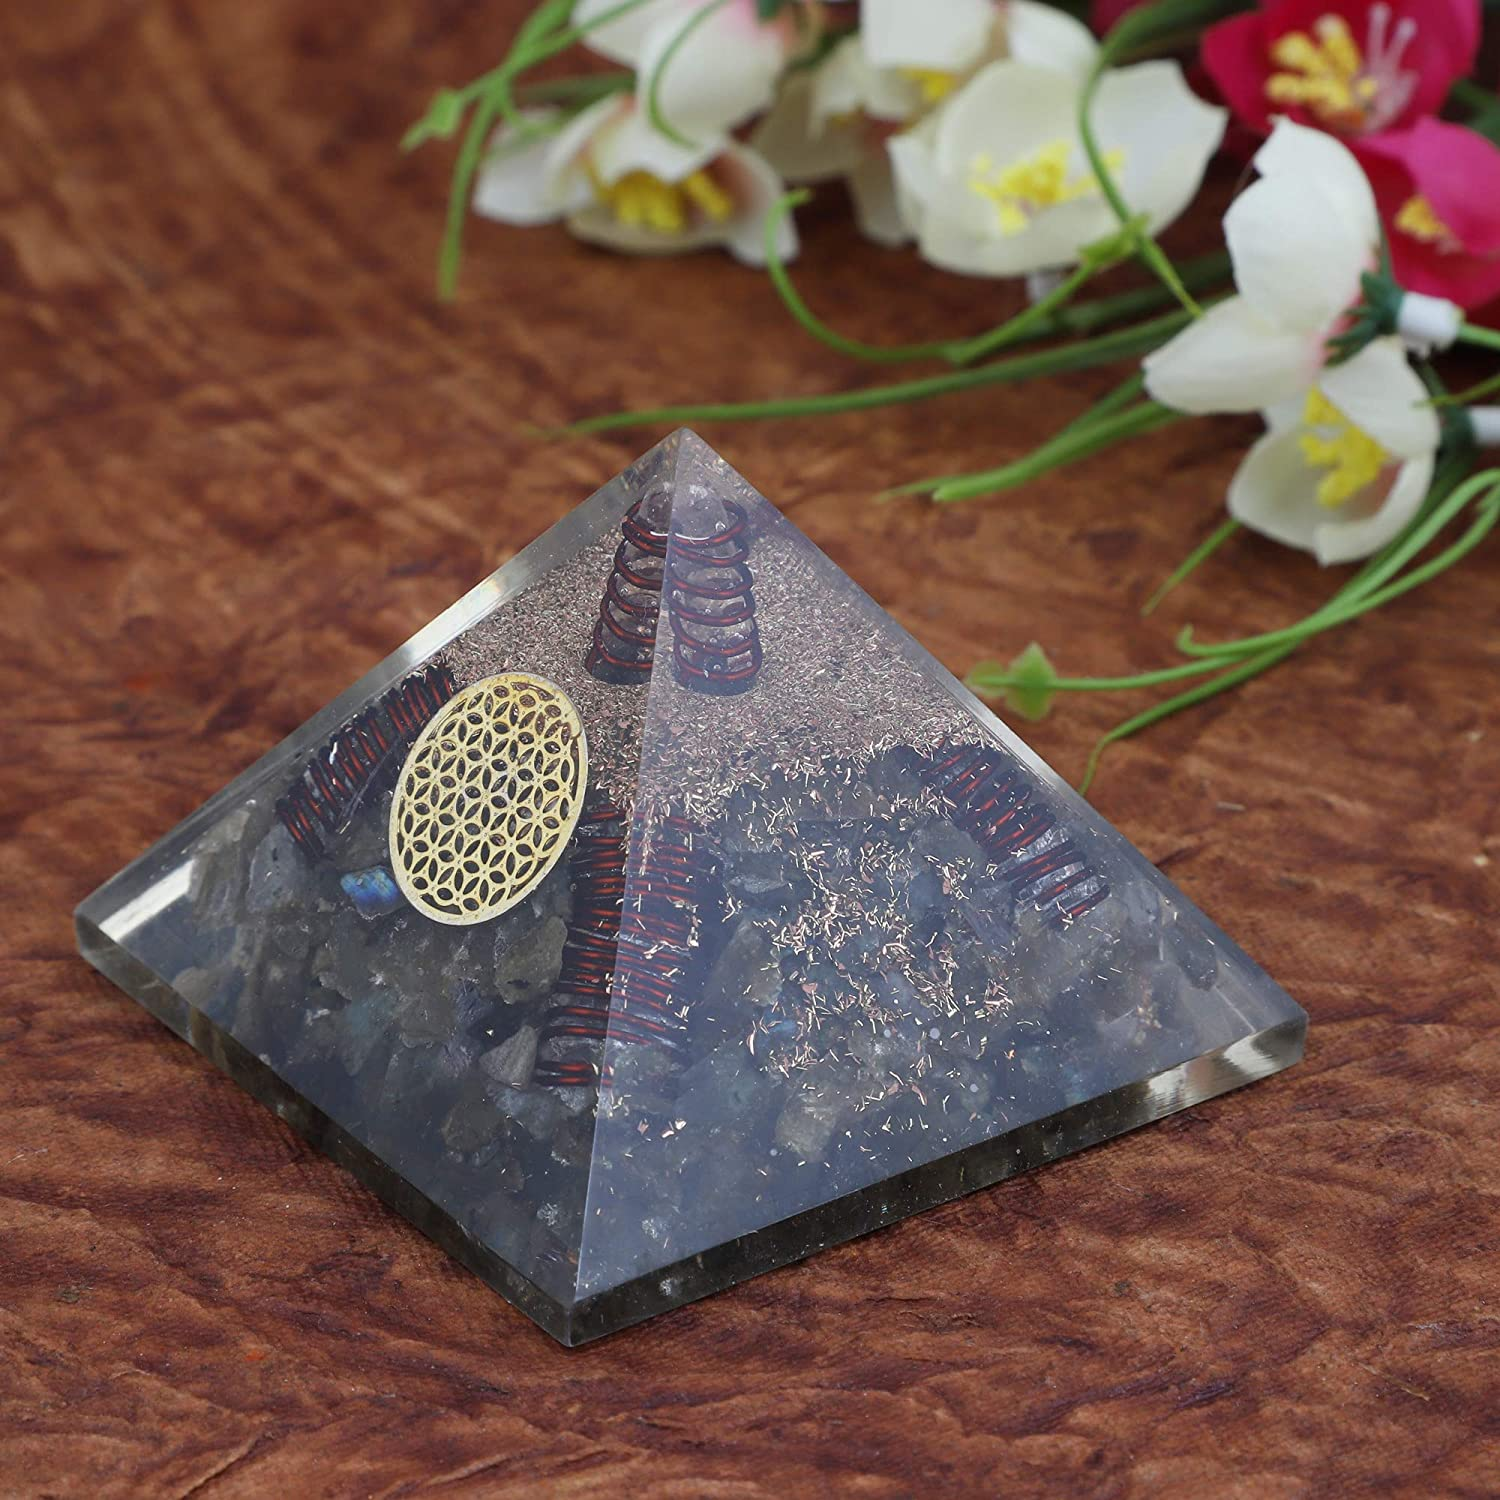 2.5-3 pollici Crocon Labradorite Orgone crystal Gemstone Pyramid with Flower of life symbol for Chakra dellenergia positiva Reiki healing /& Aura cleaning size